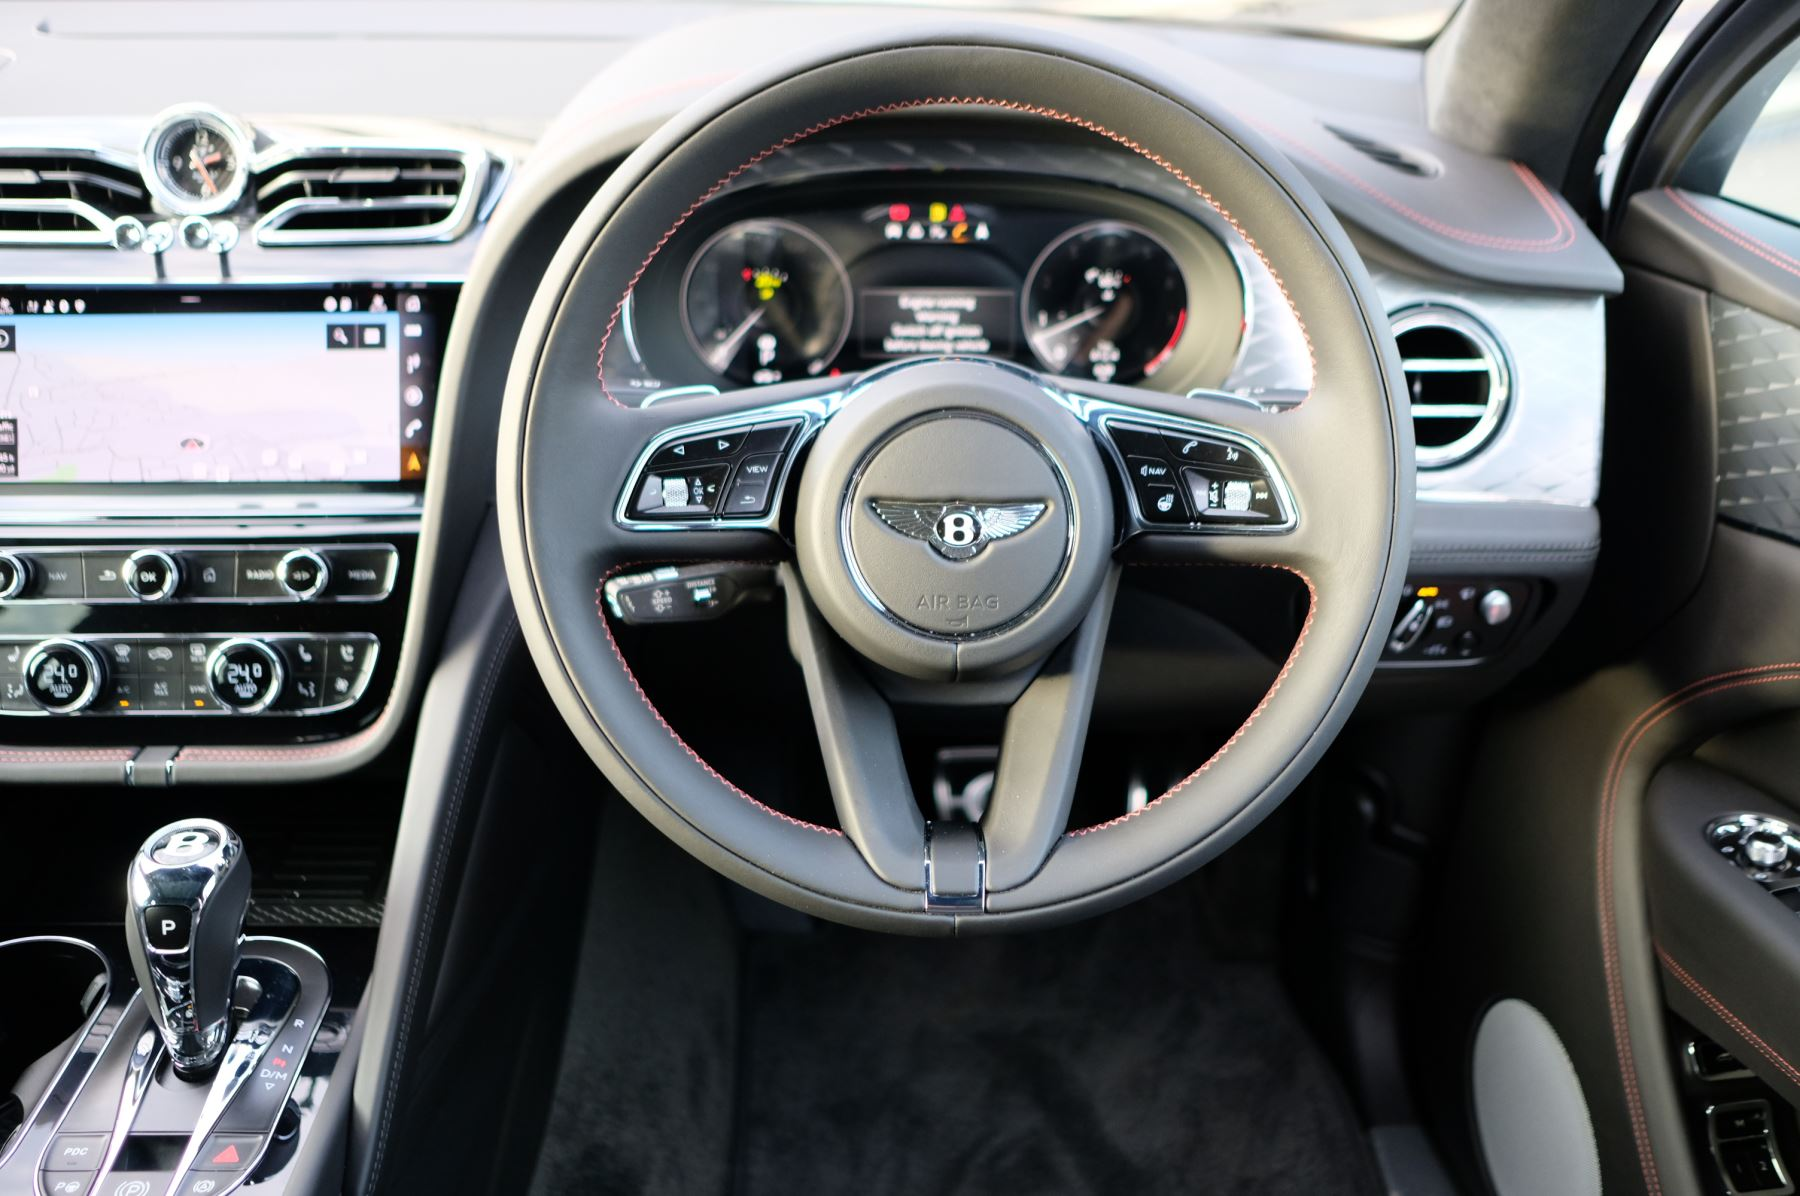 Bentley Bentayga 4.0 V8 - Touring and Front Seat Comfort Specification  image 14